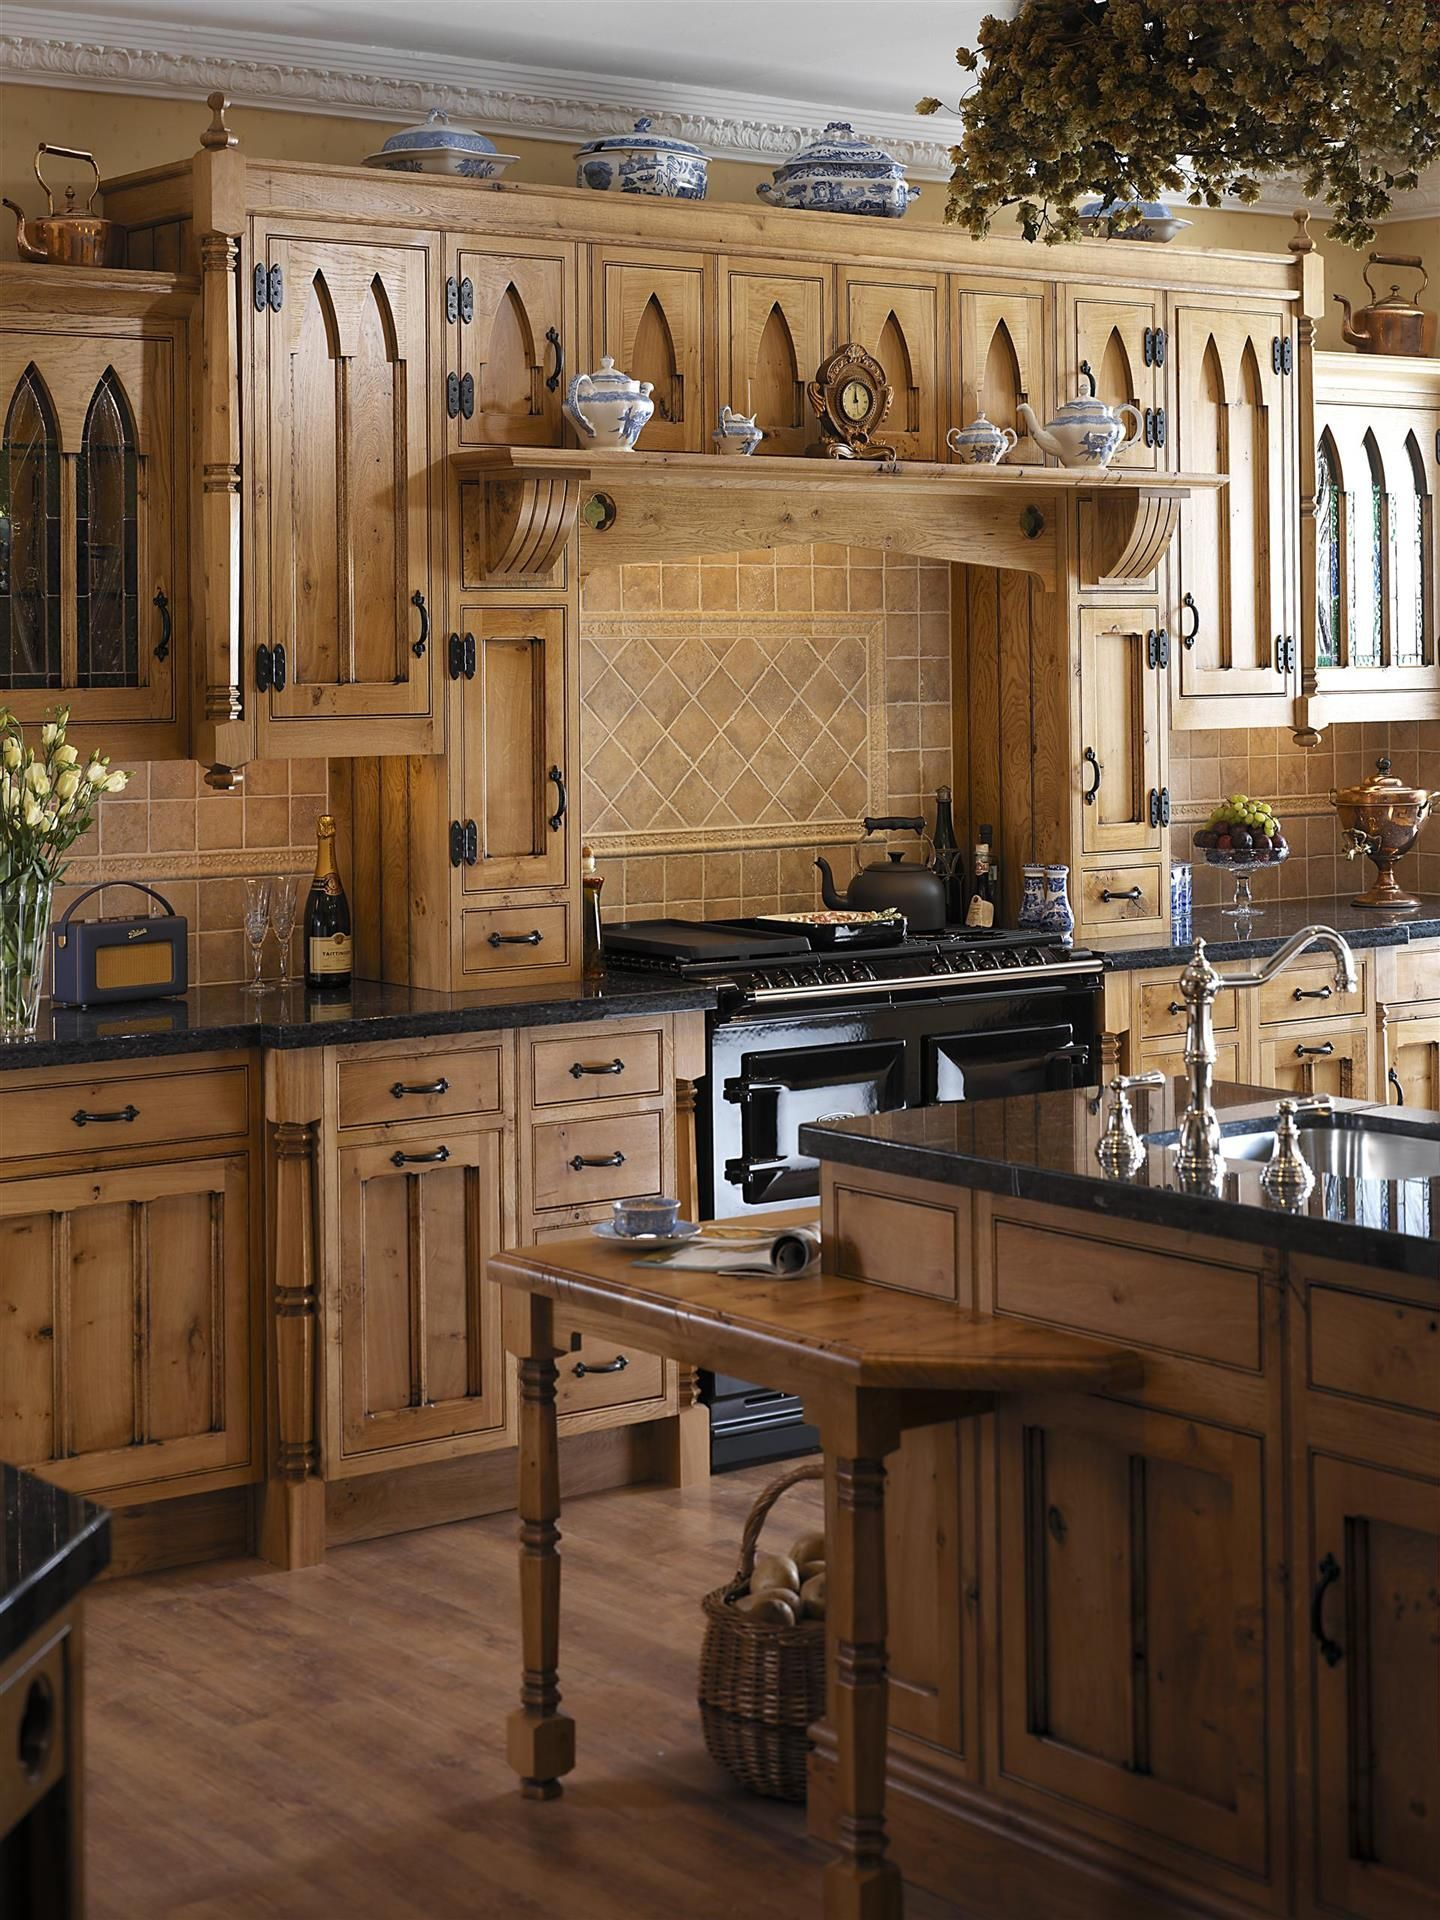 Designing A Gothic Kitchen In Your House